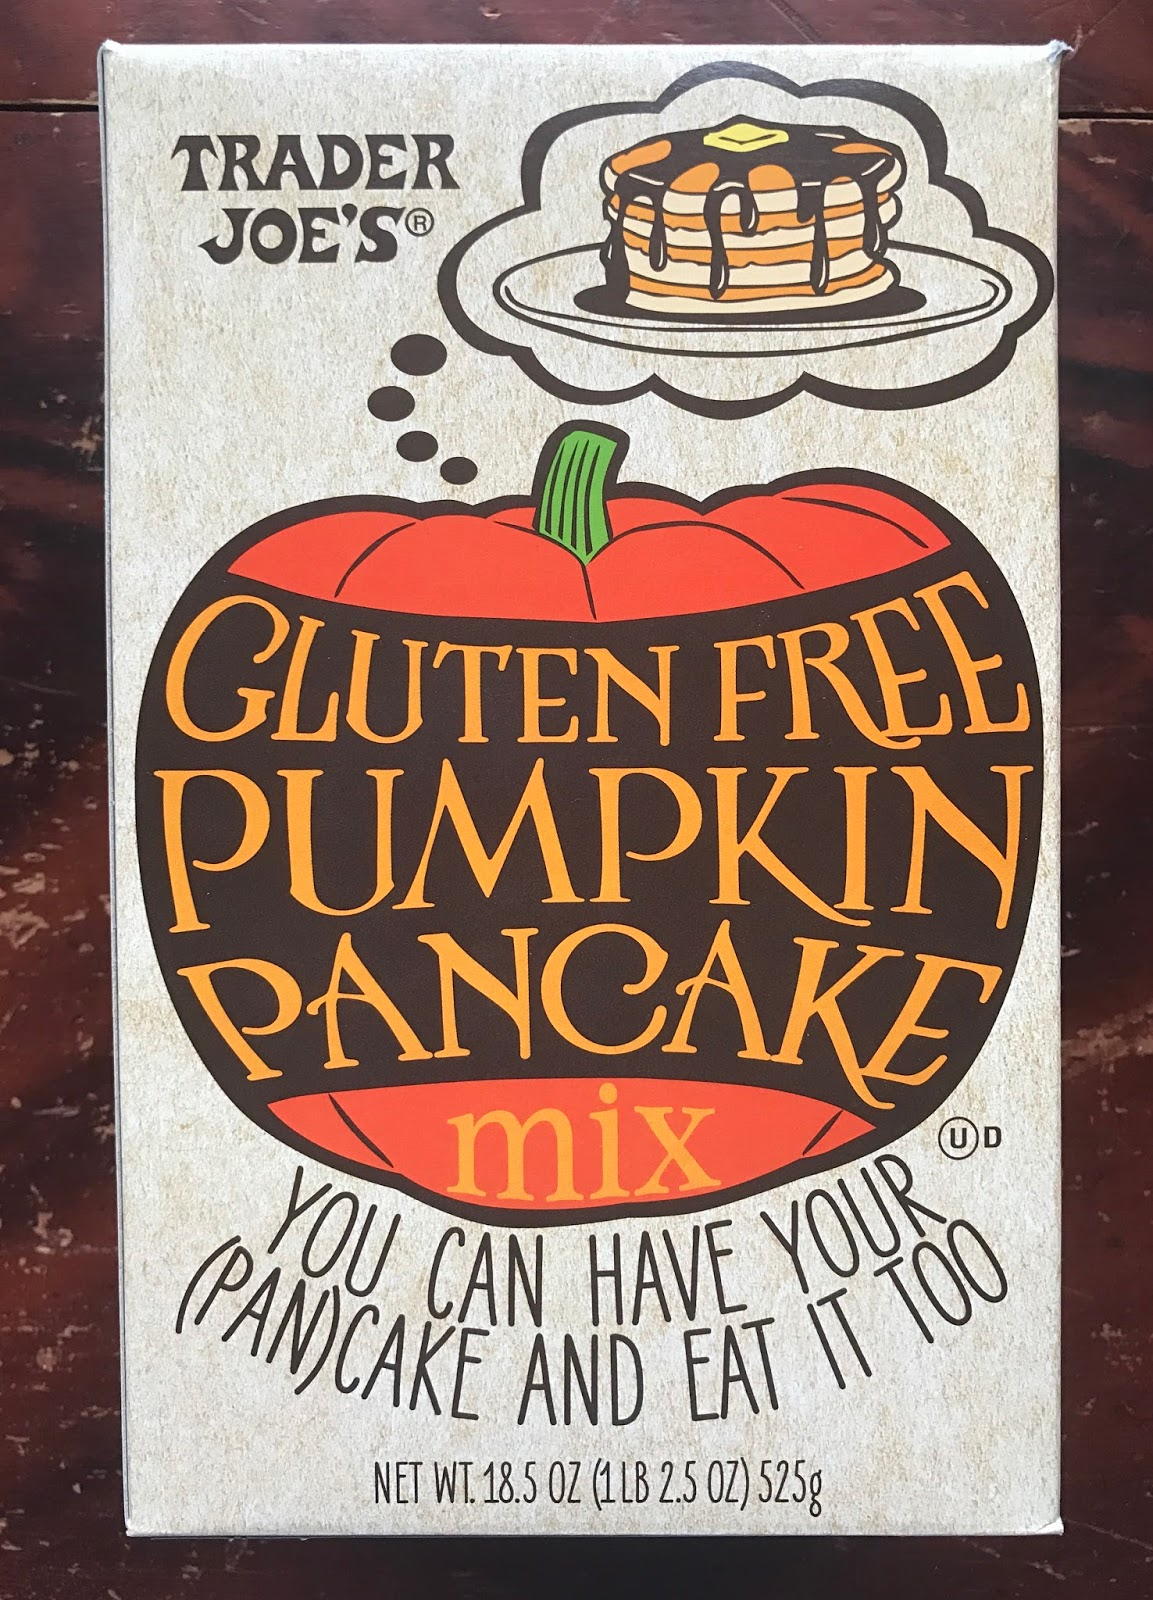 22+ Trader Joe's Gluten Free Flour Review Images